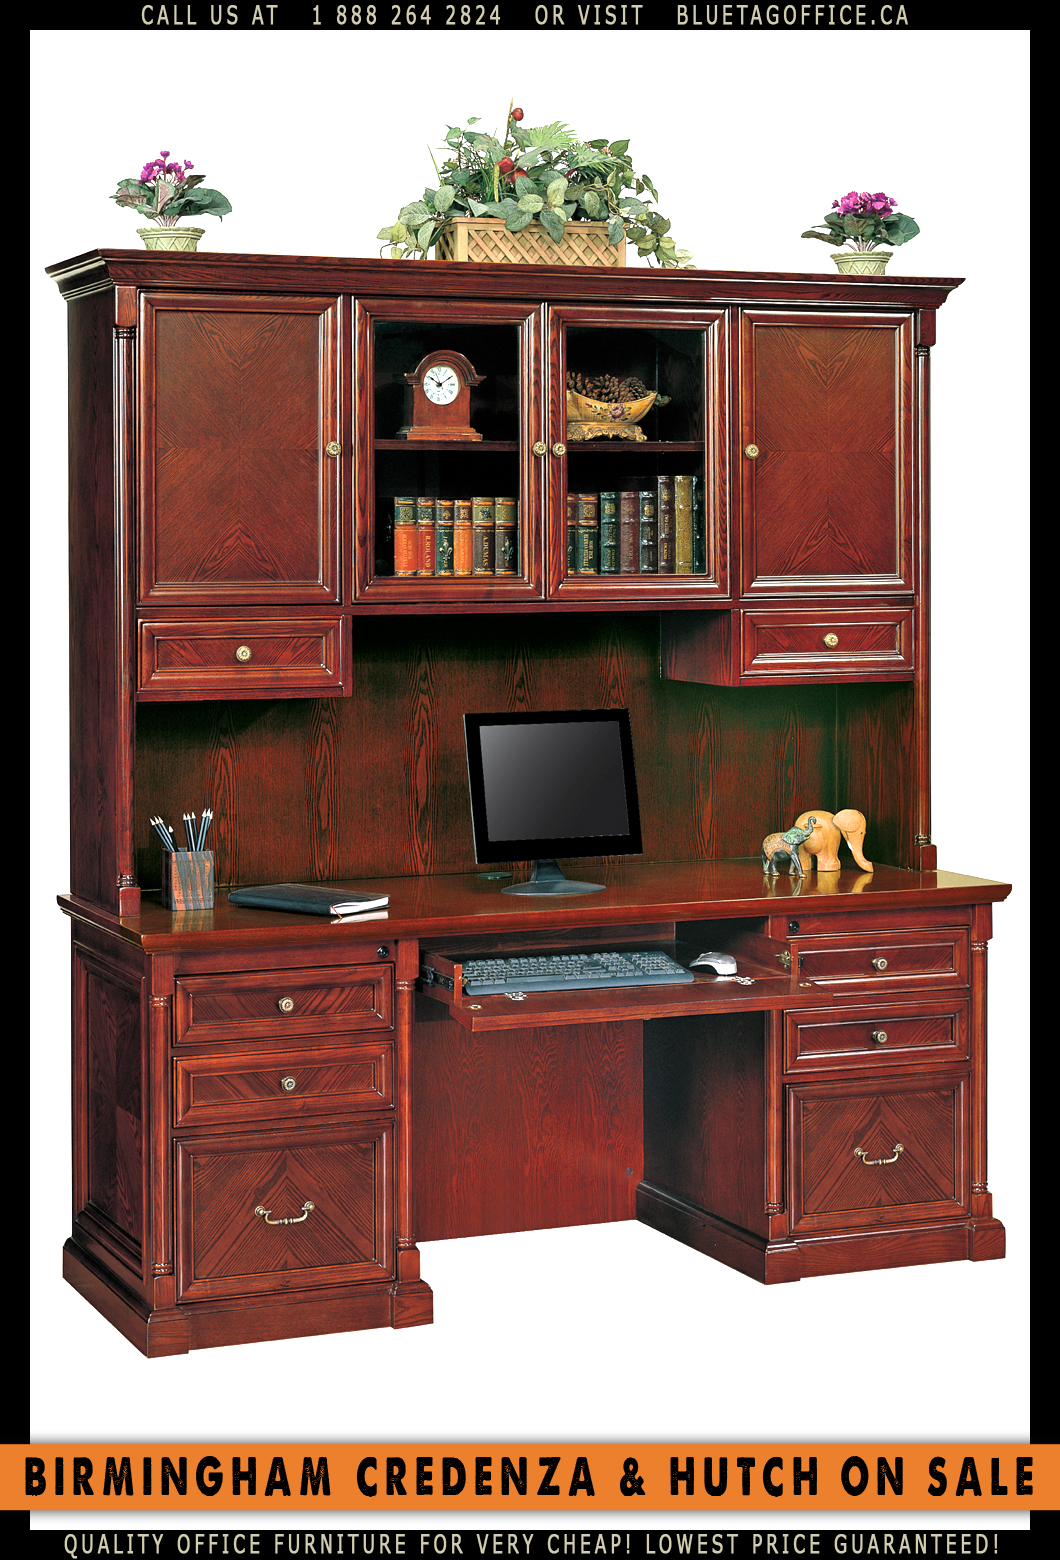 Cheap Desks For Sale Birmingham U Shaped Desk With Hutch For Very Cheap